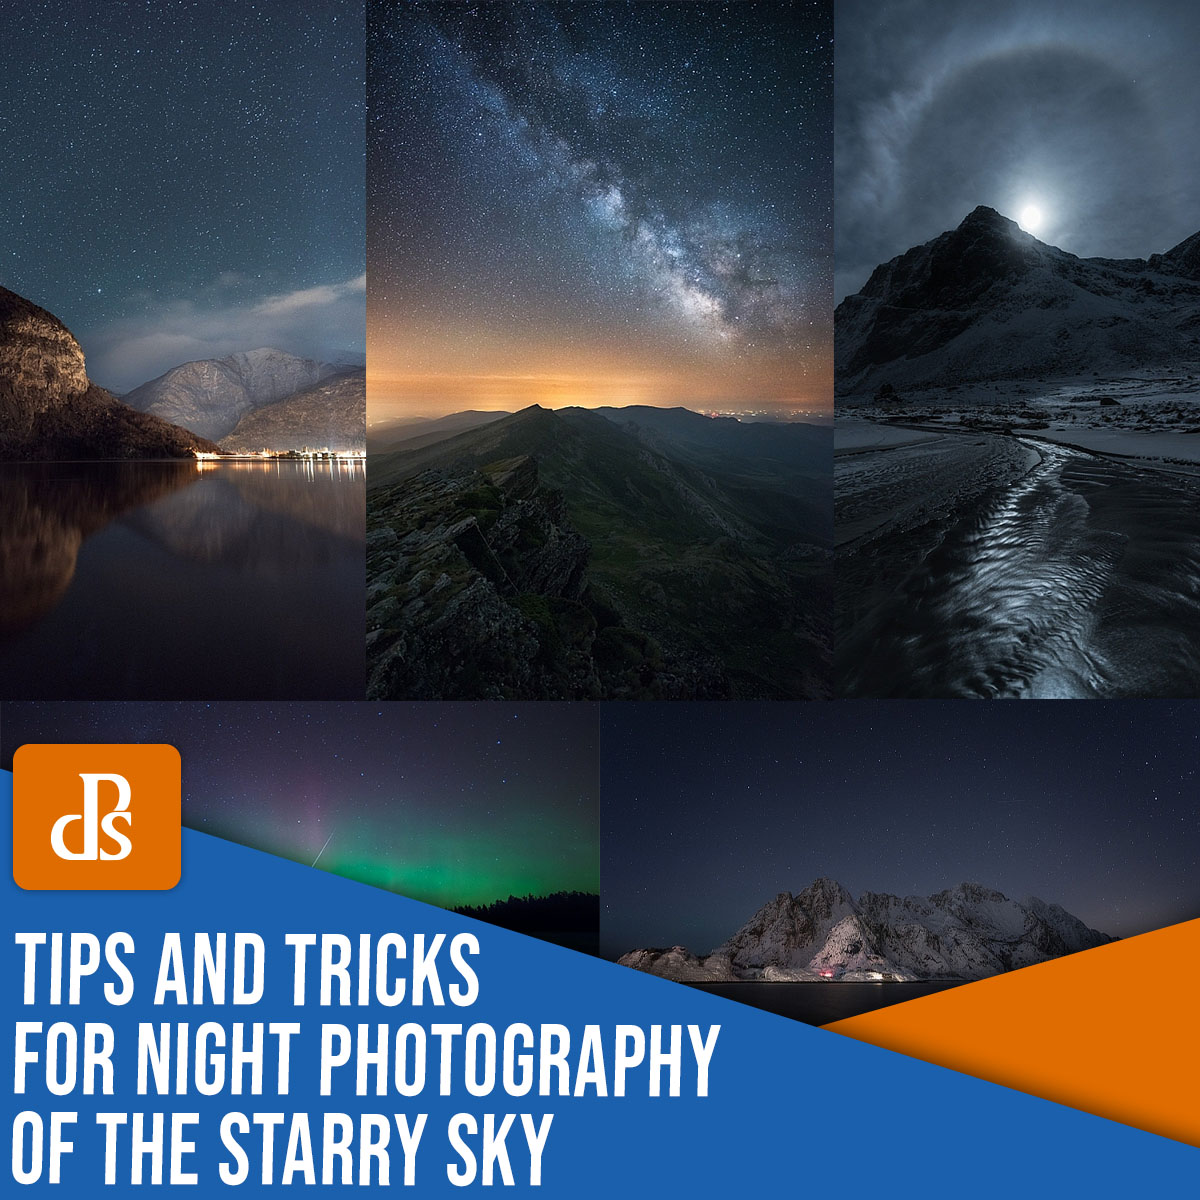 tips and tricks for night photography of the starry sky